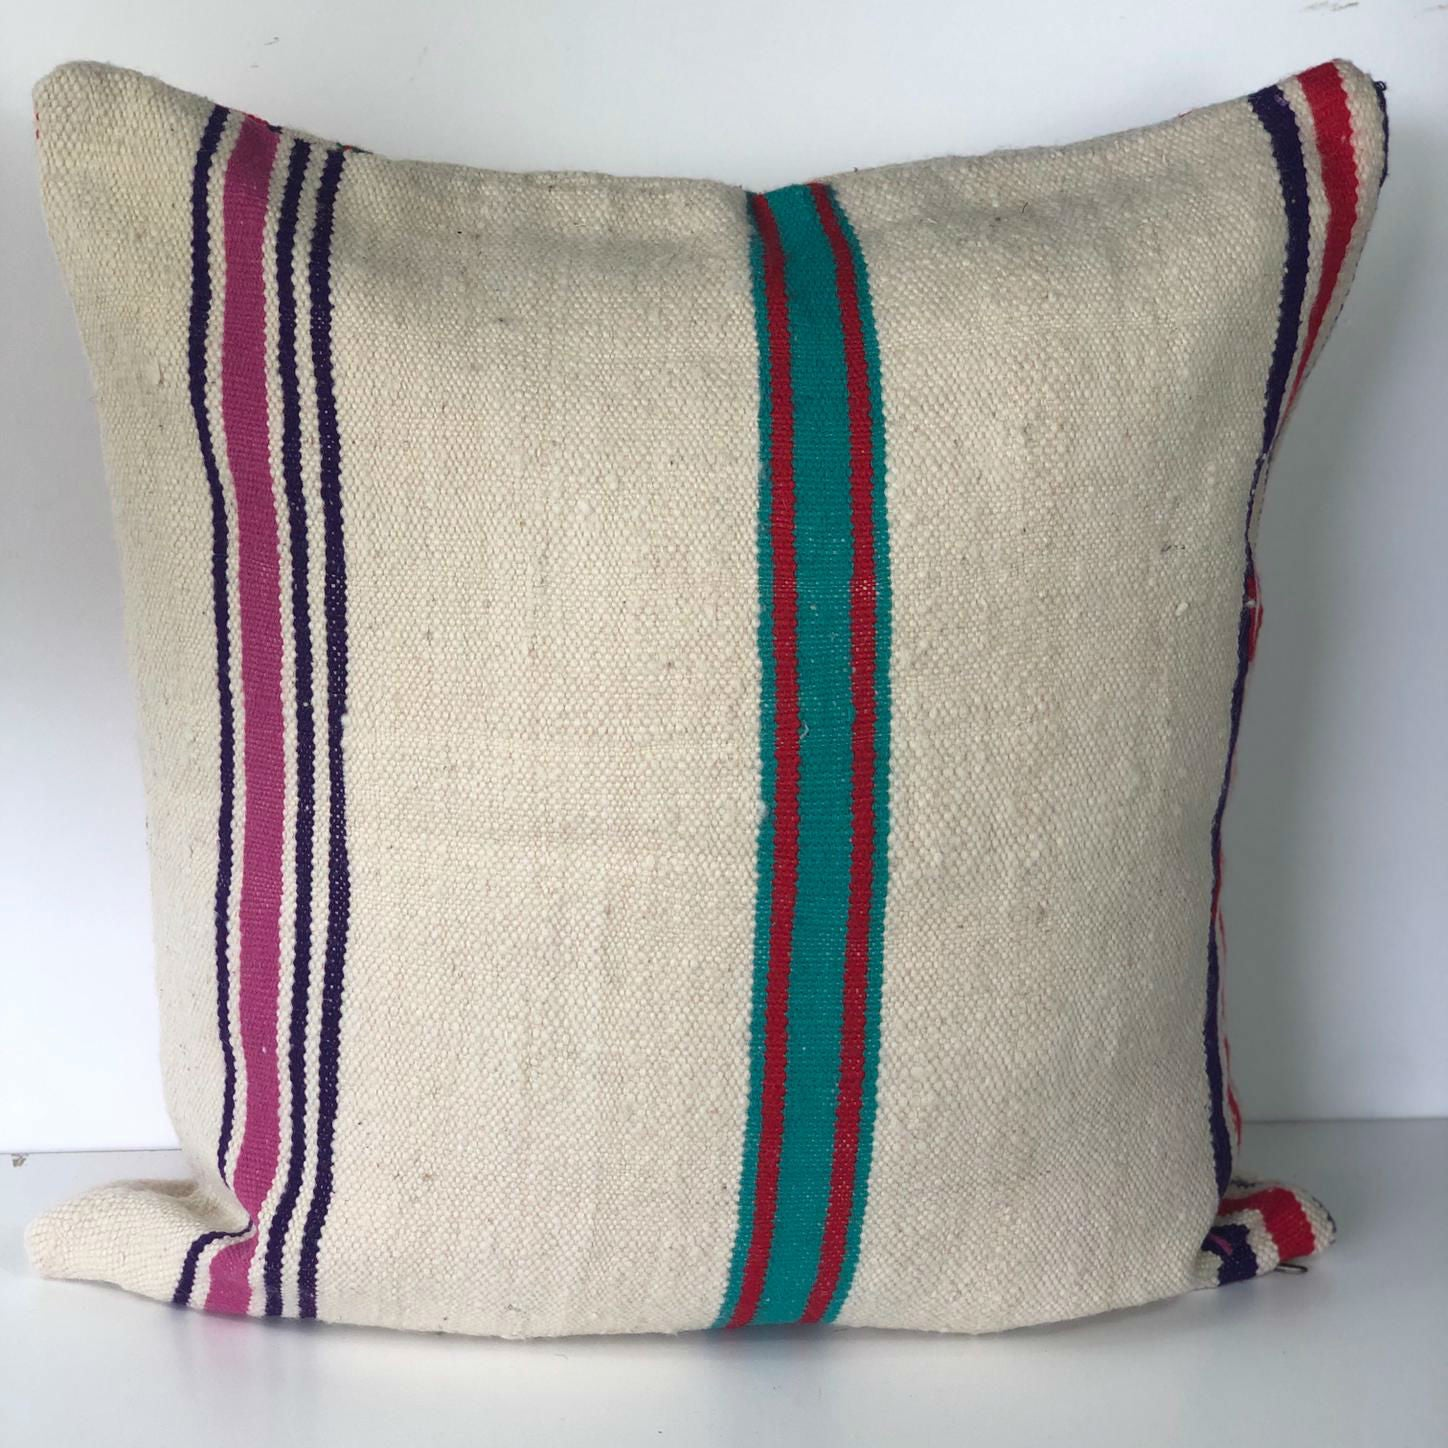 COCO vintage blanket pillow cover